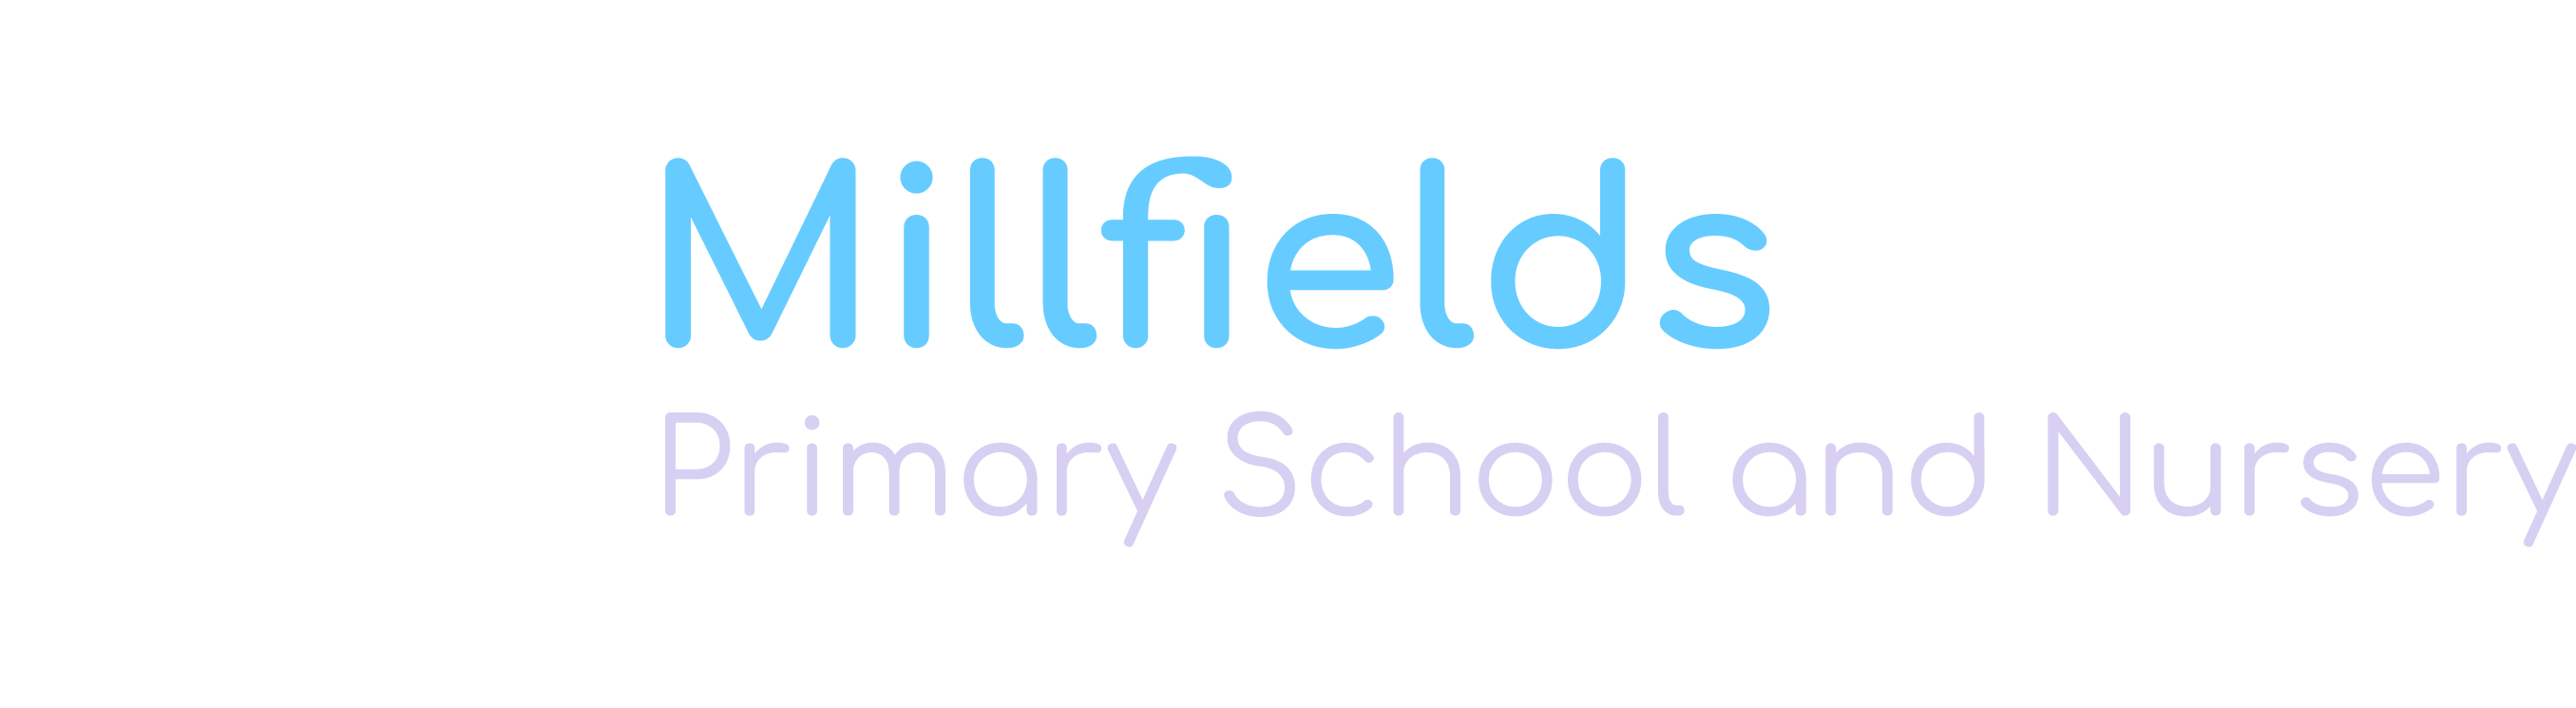 Millfields Primary School